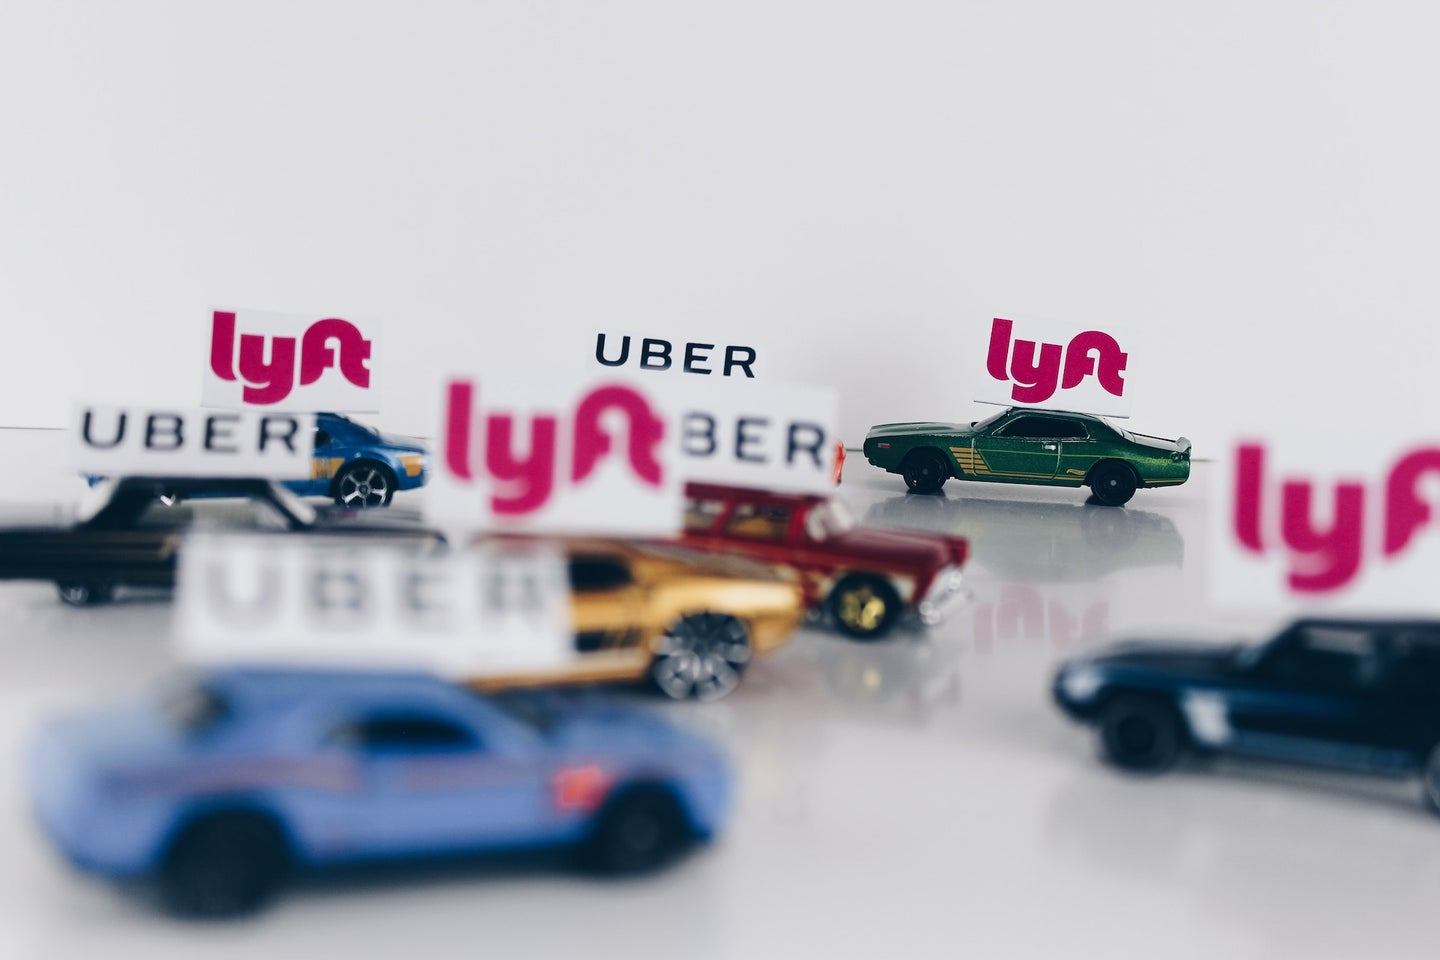 Uber and Lyft signs on tiny cars.